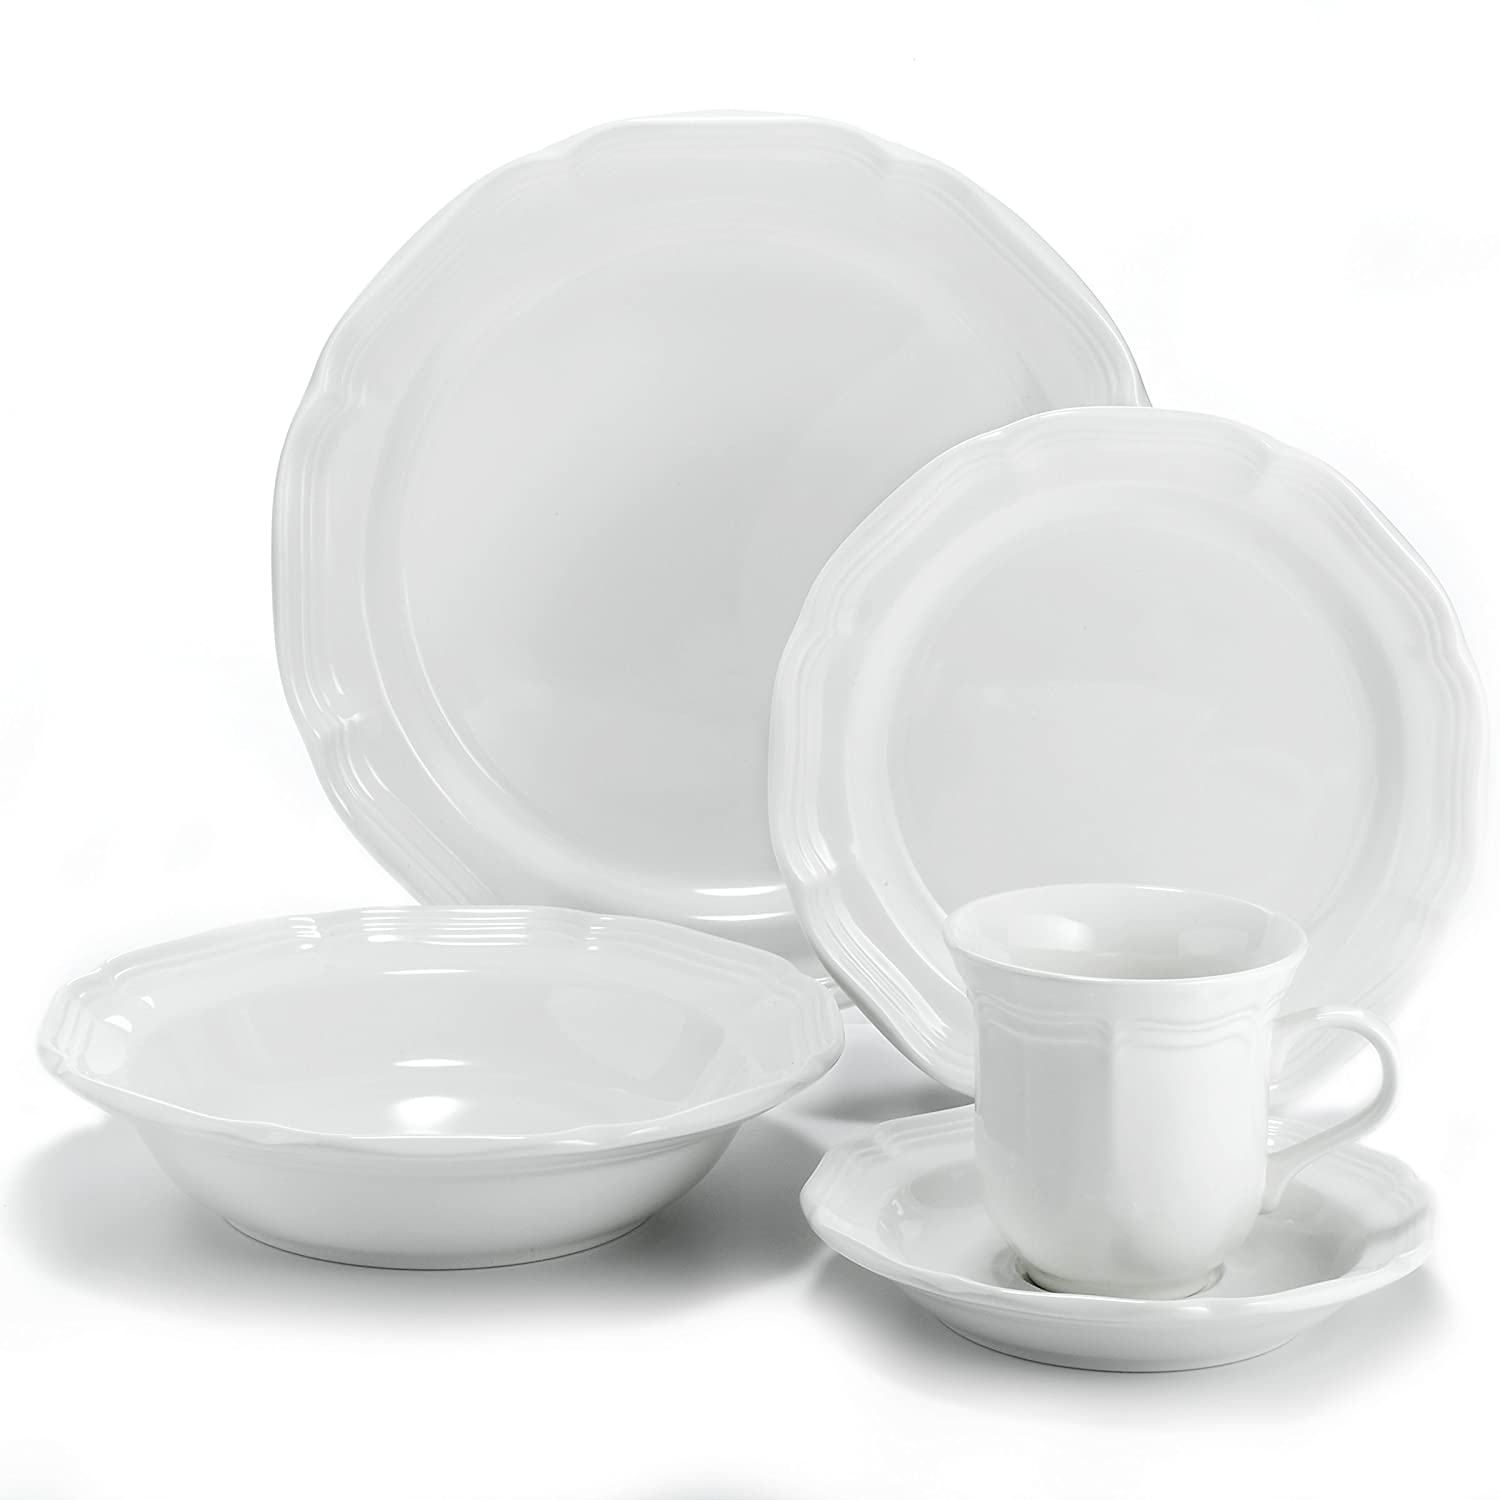 Amazon.com Mikasa French Countryside 5-Piece Place Setting Dinnerware Sets Kitchen u0026 Dining  sc 1 st  Amazon.com & Amazon.com: Mikasa French Countryside 5-Piece Place Setting ...